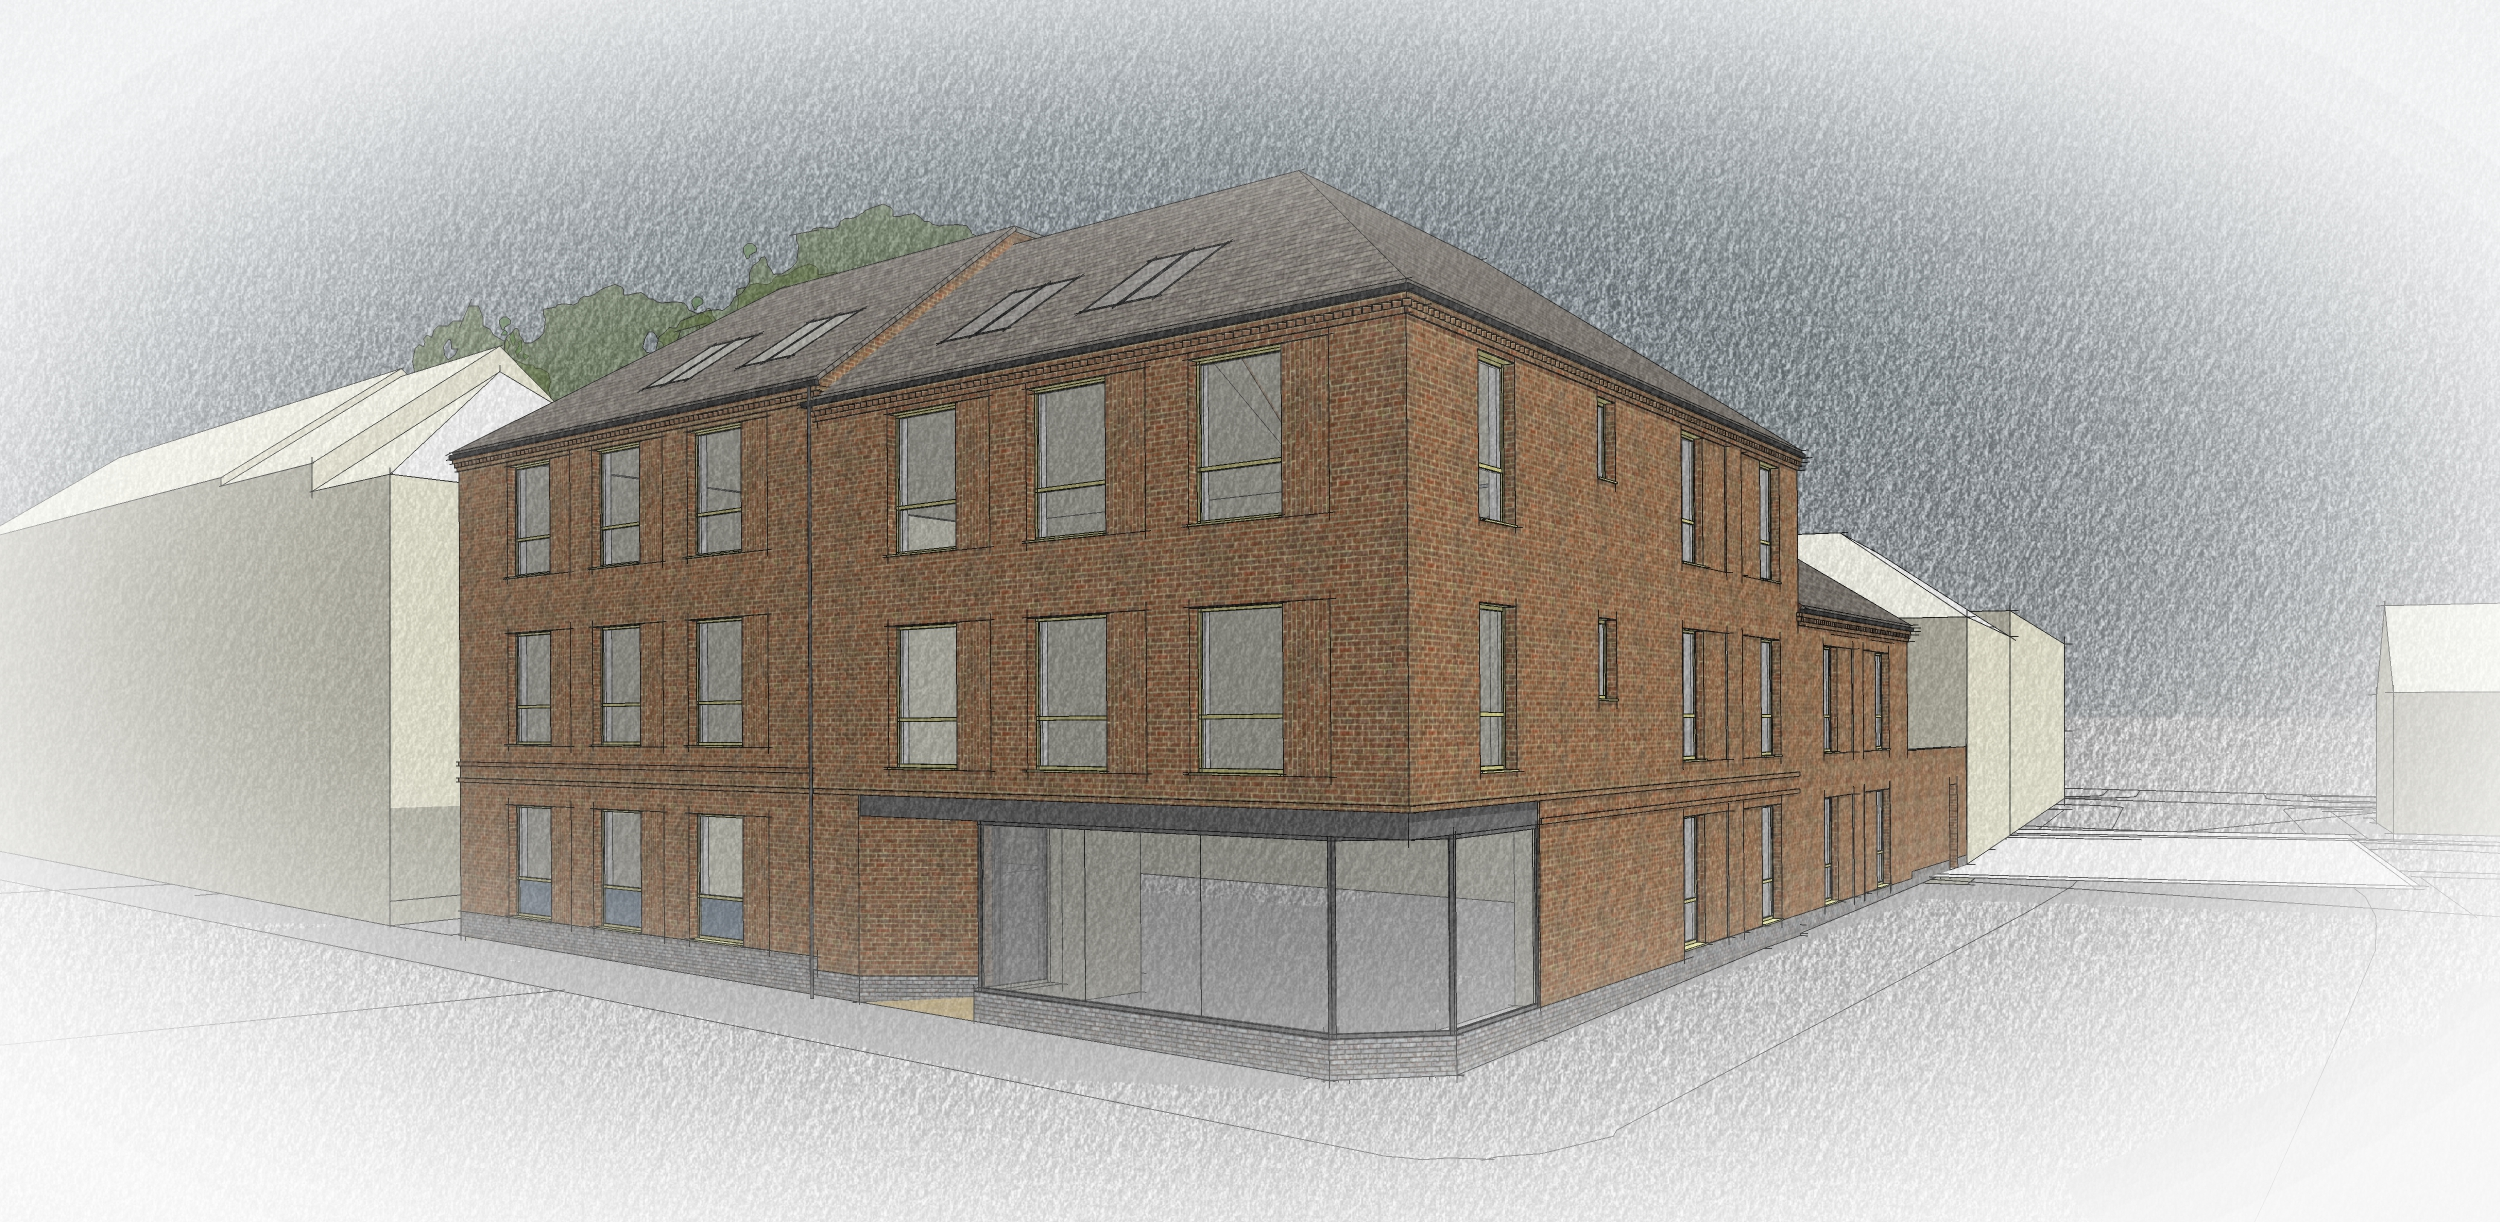 High-Spec Nottingham Student Development Gets The Go-Ahead